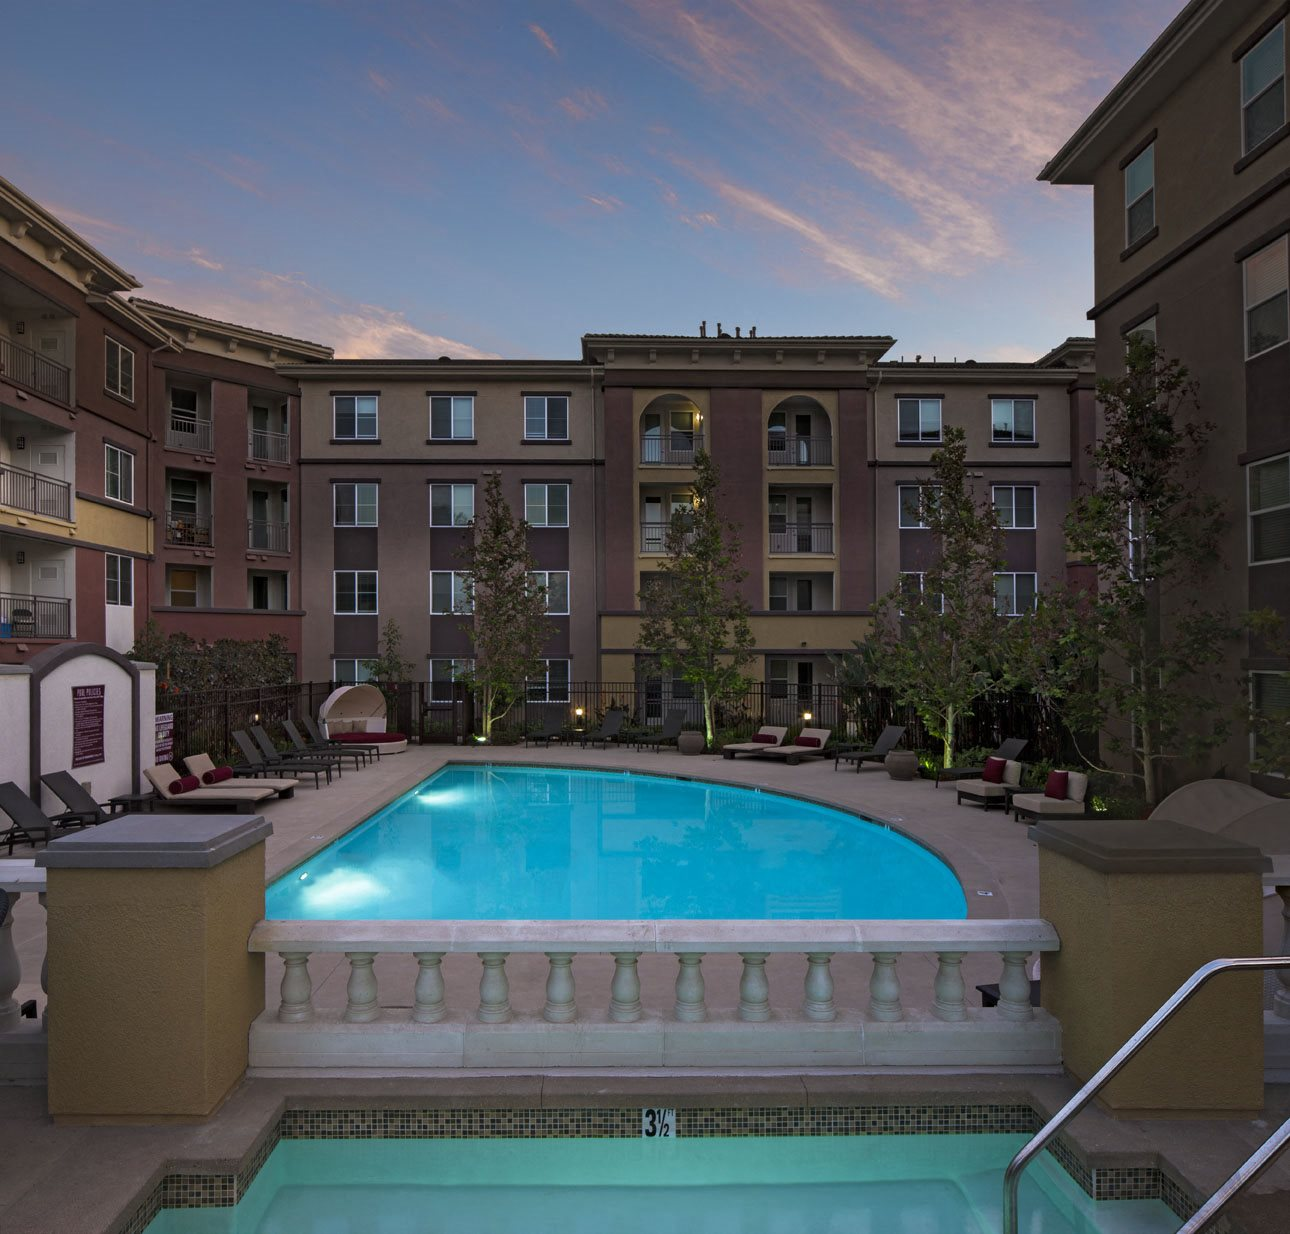 Summit Hills Apartments: Photos And Video Of Oceano At Warner Center In Woodland